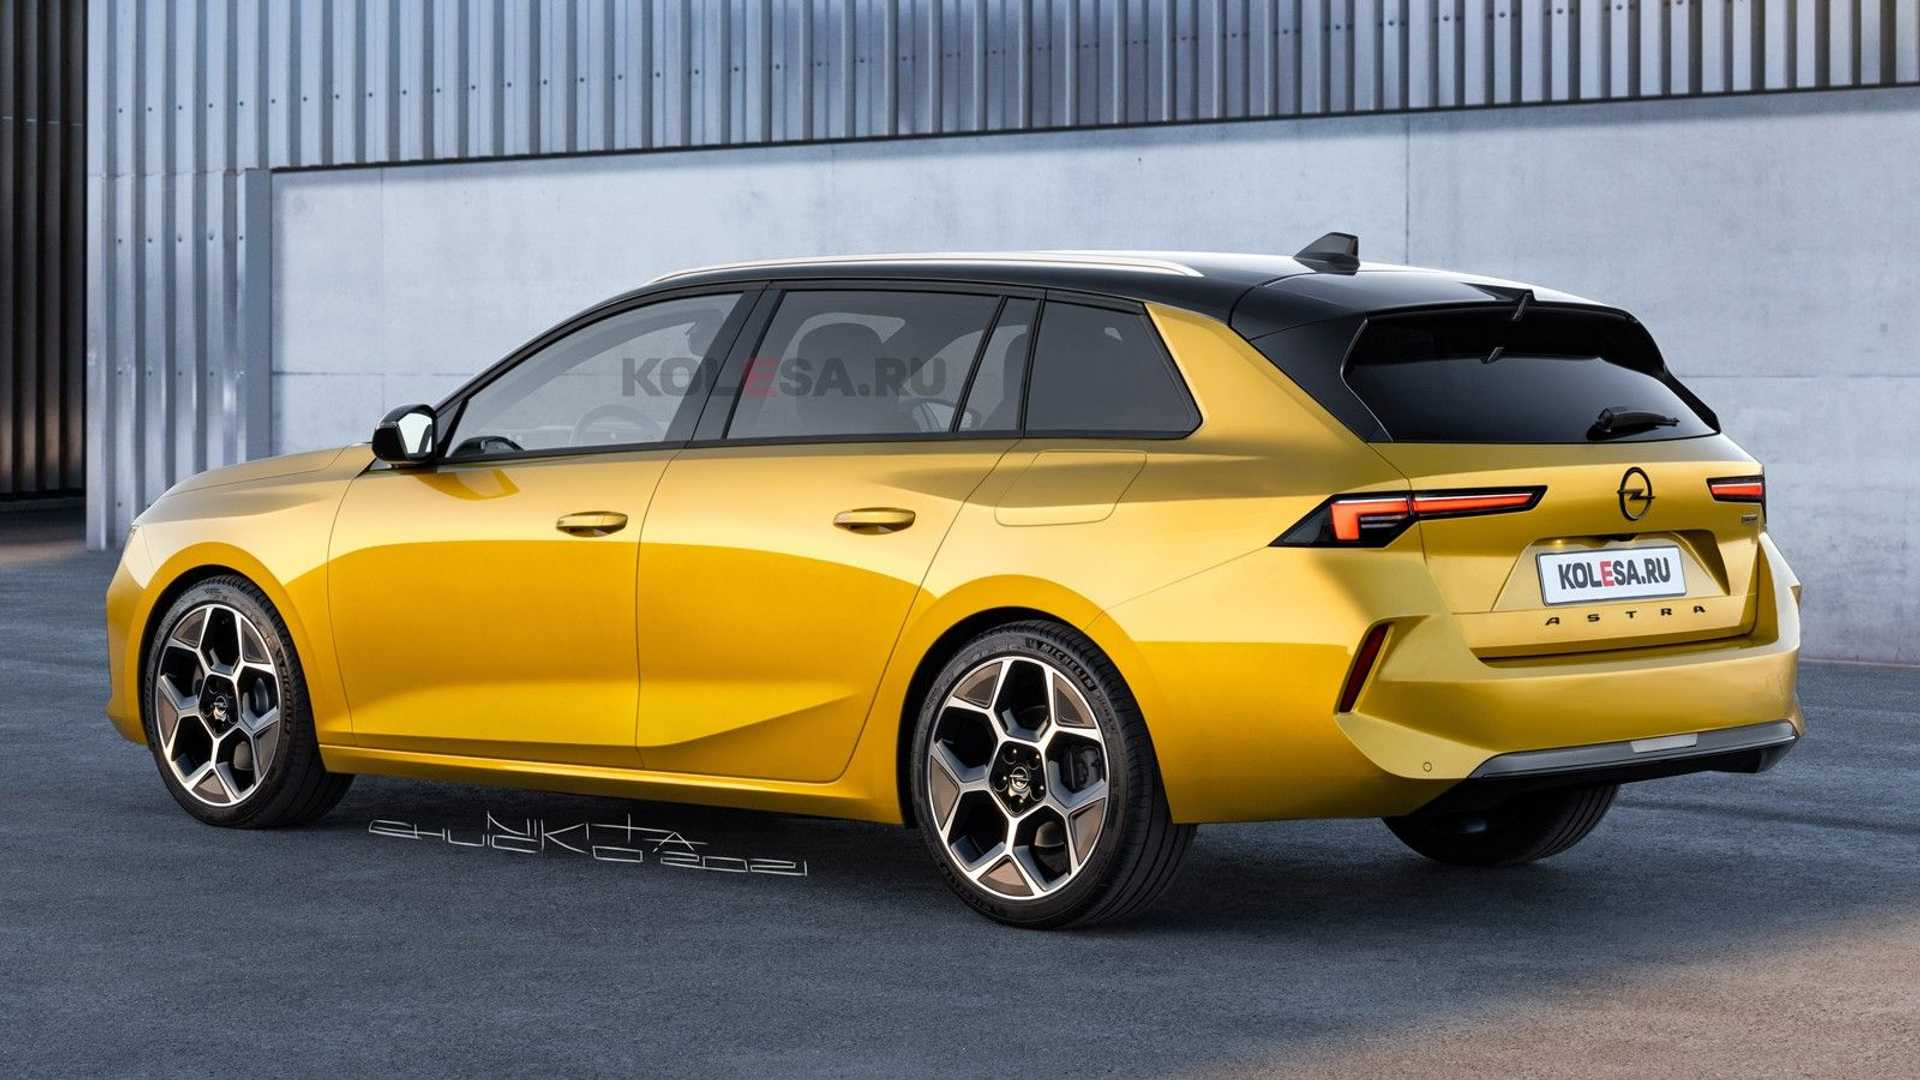 2022 Vauxhall Astra estate rendered while new prototype is spied